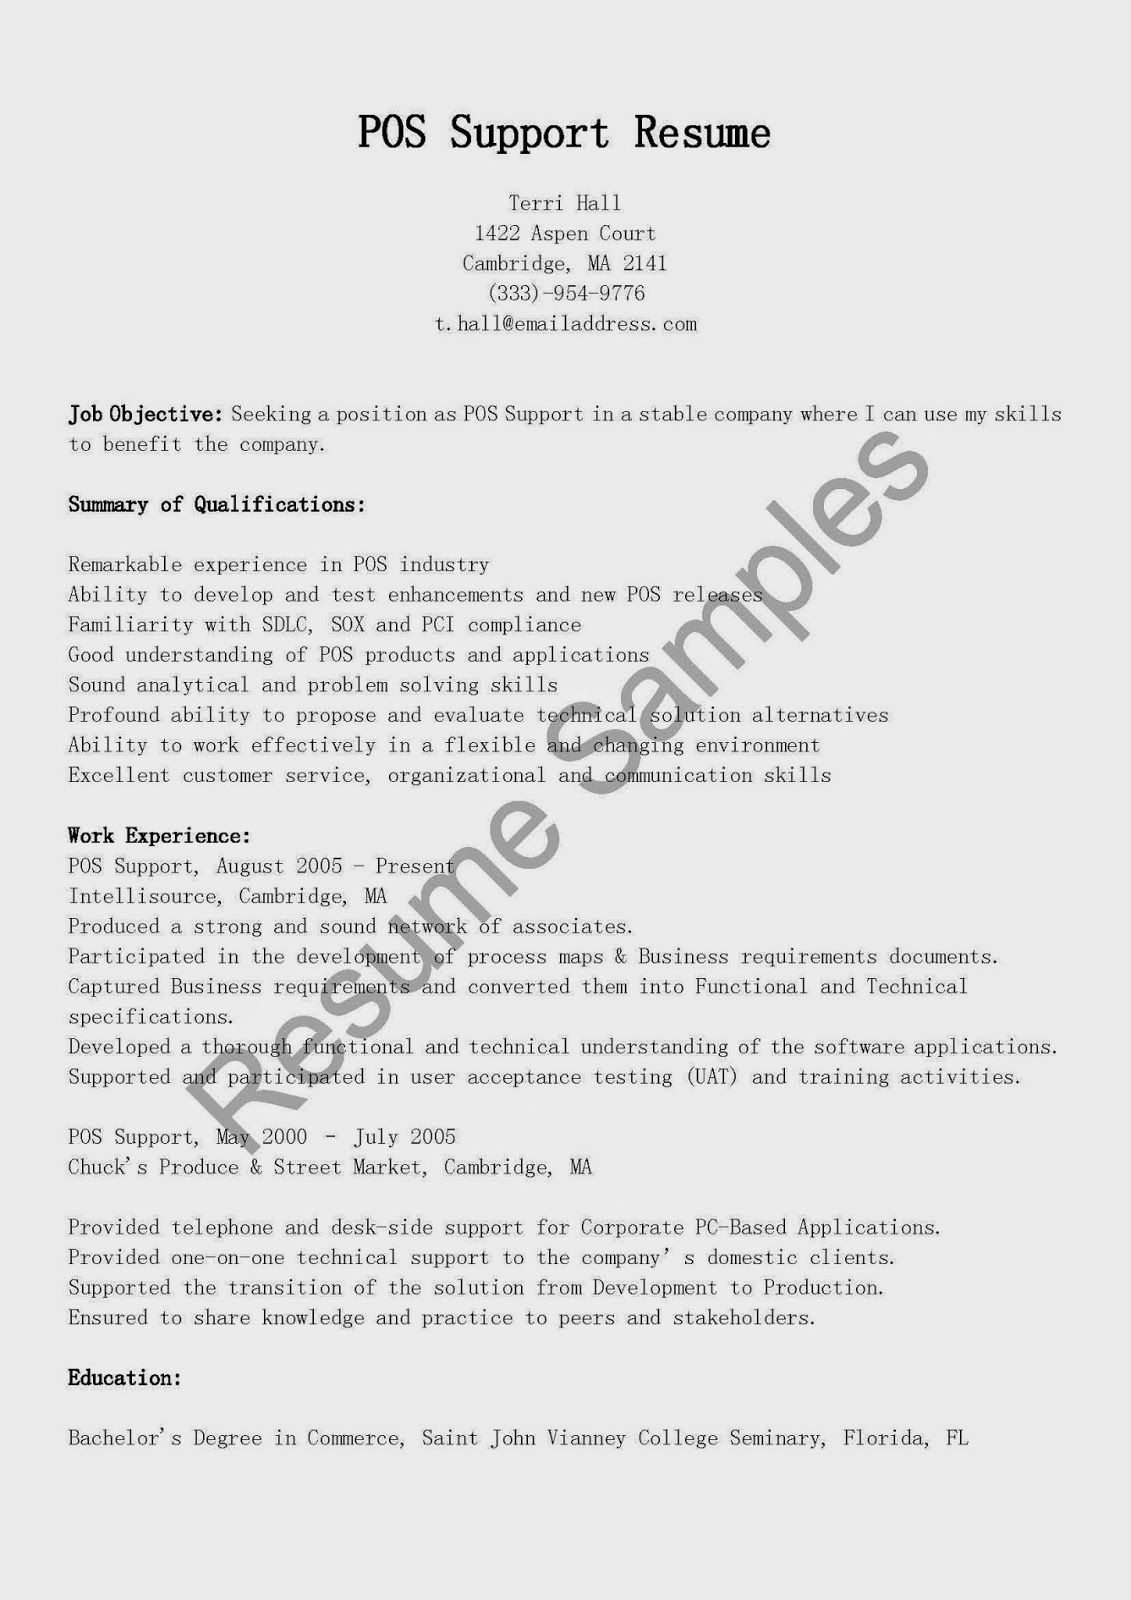 Use This FREE Sample POS Support Resume With Objective, Skills U0026  Responsibilities To Write Your Own Resume U0026 Instantly Draw The Recruiteru0027s  Interest.